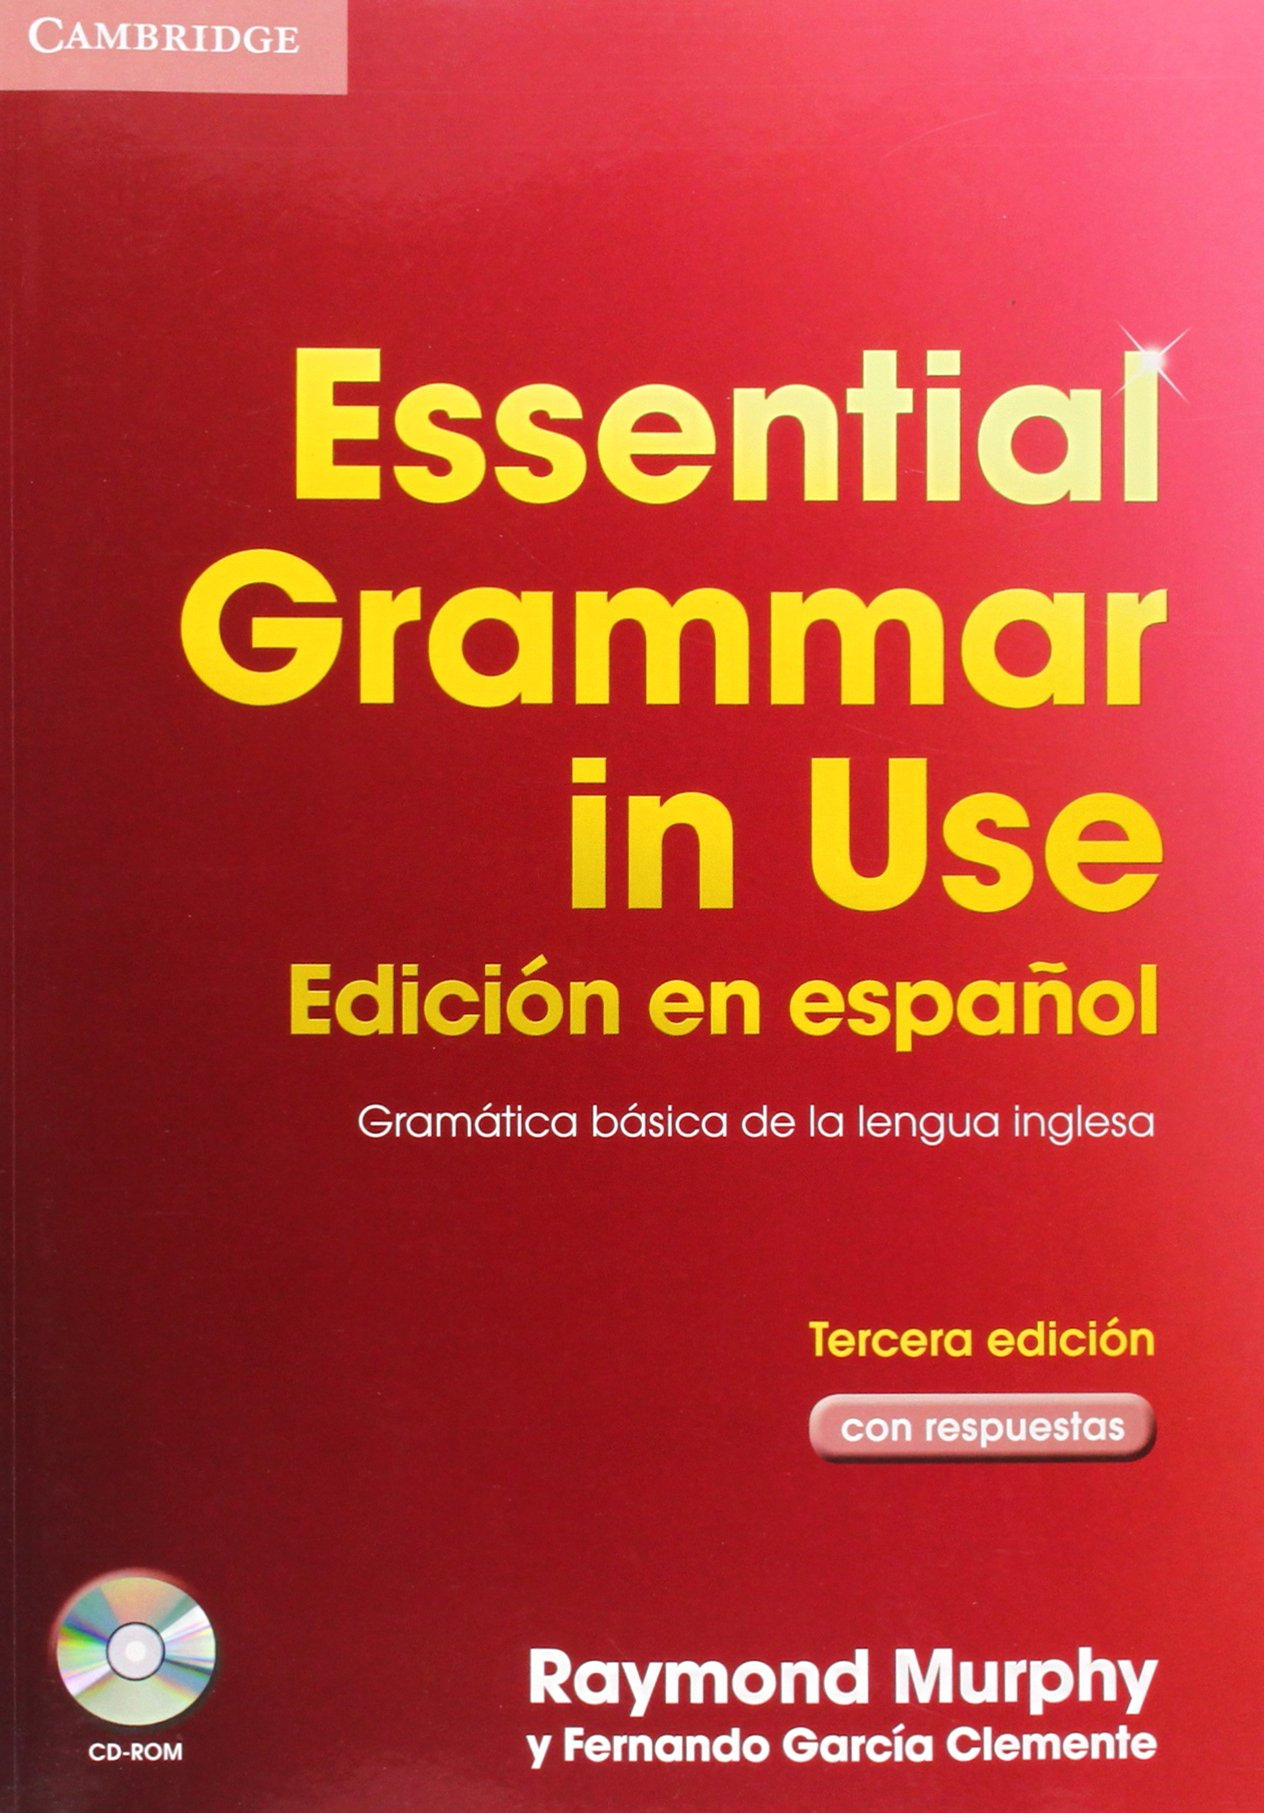 Essential Grammar in Use Spanish Edition with Answers with CD-ROM 3rd Edition